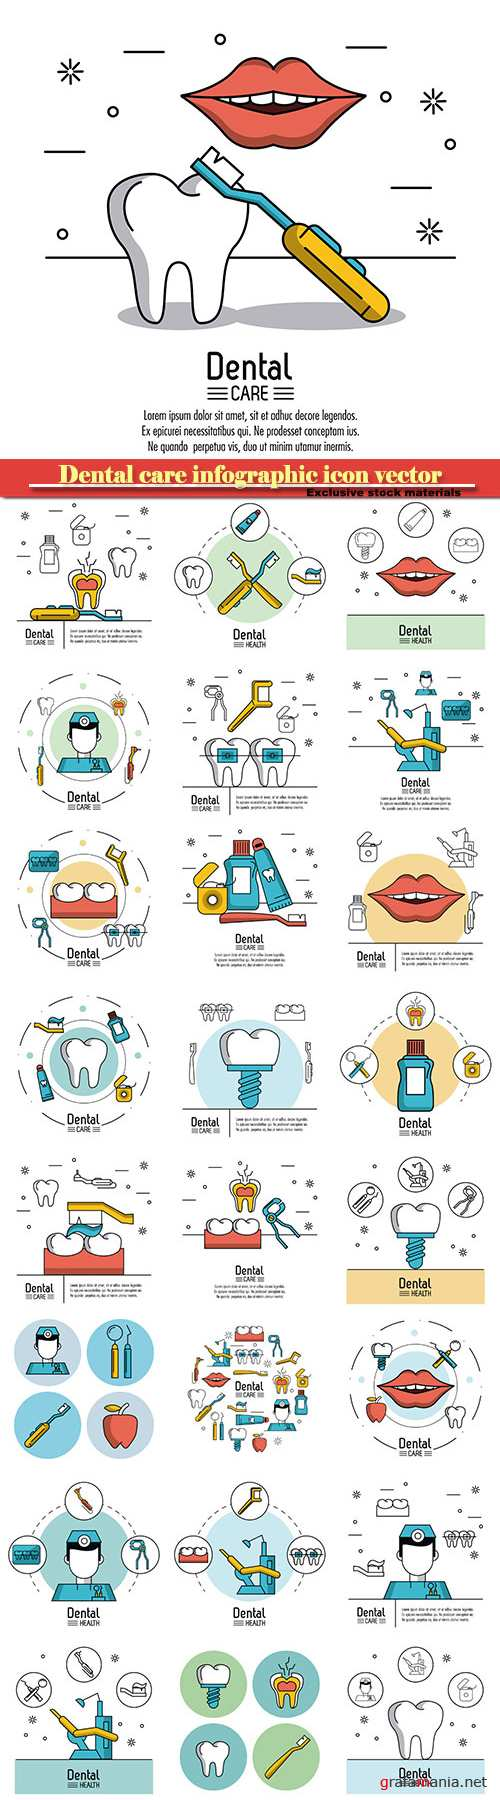 Dental care infographic icon vector illustration graphic design